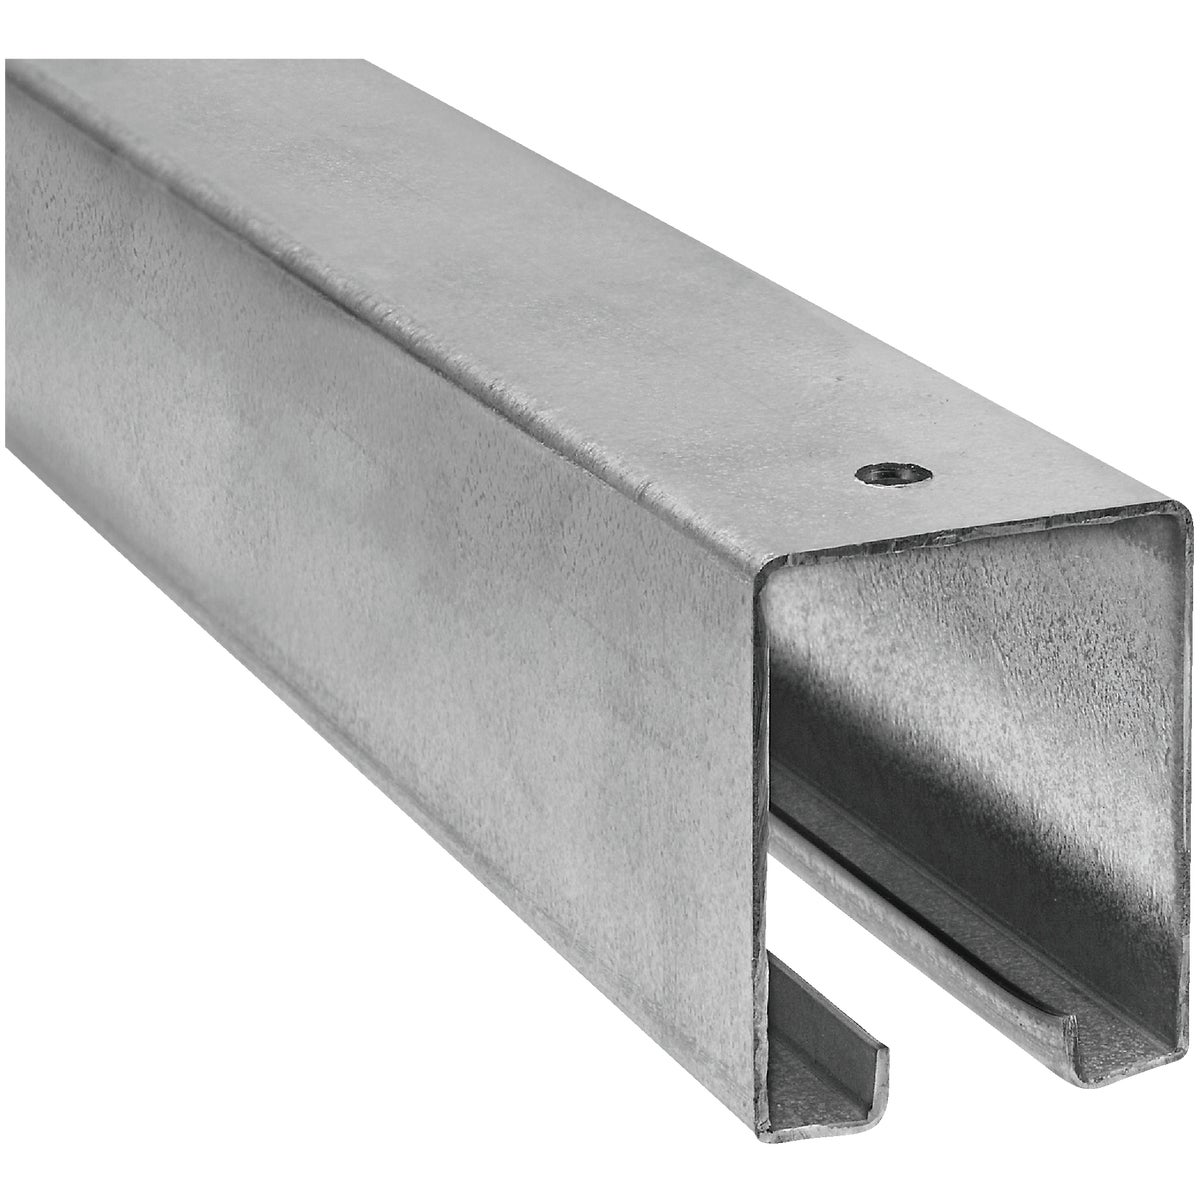 16' GALVANIZED BOX RAIL - N105395 by National Mfg Co